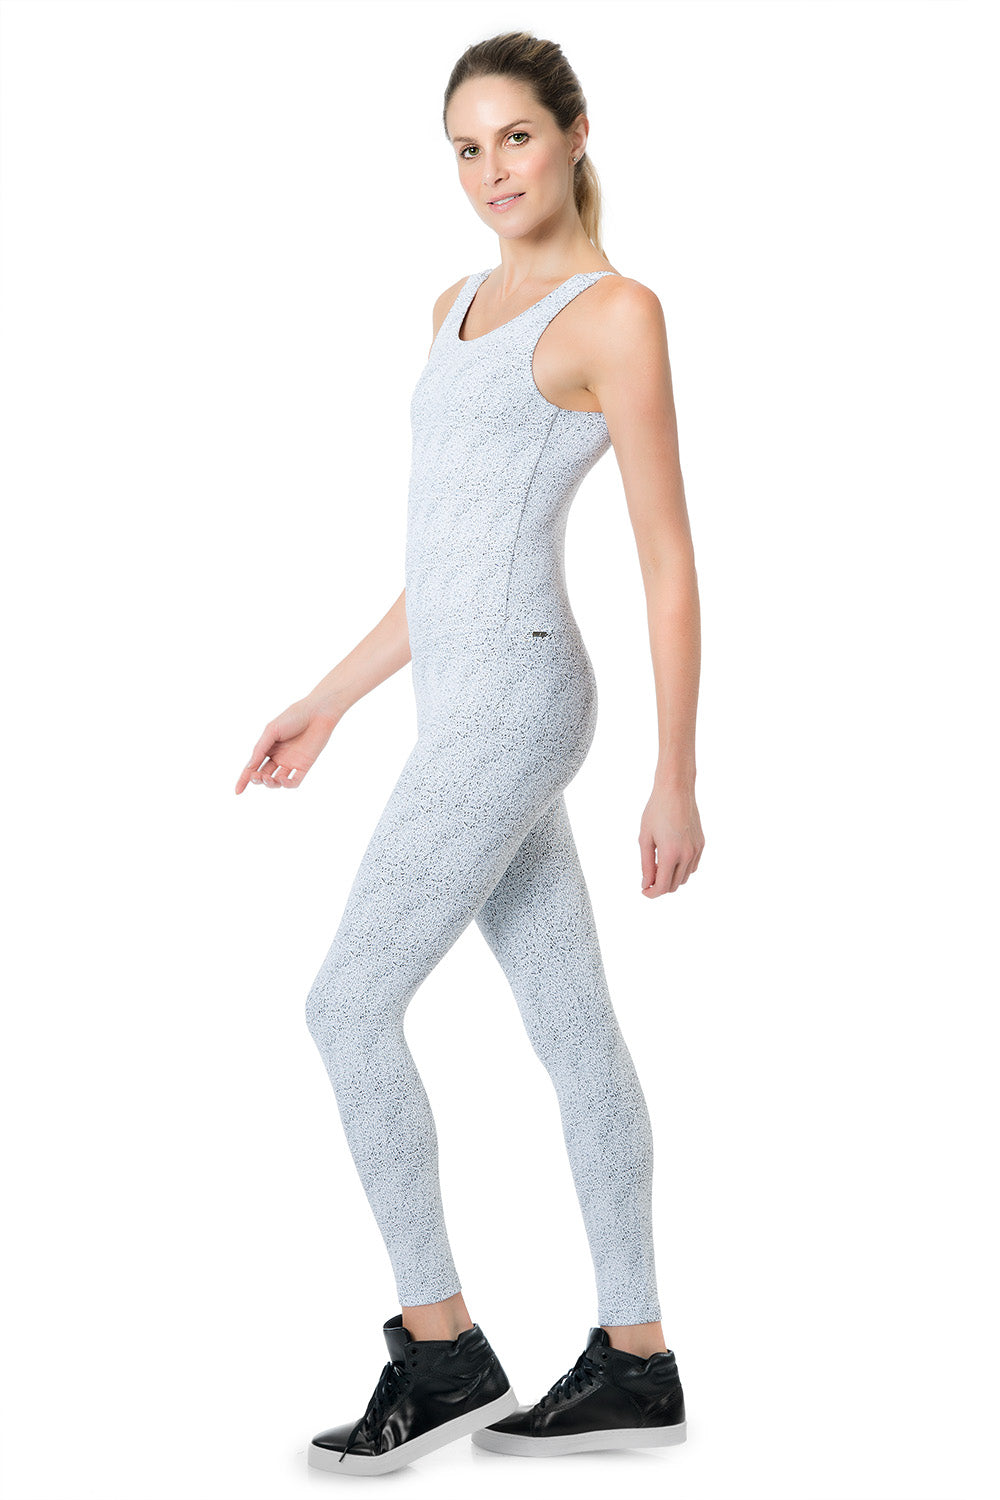 Exercise Now! Jumpsuit